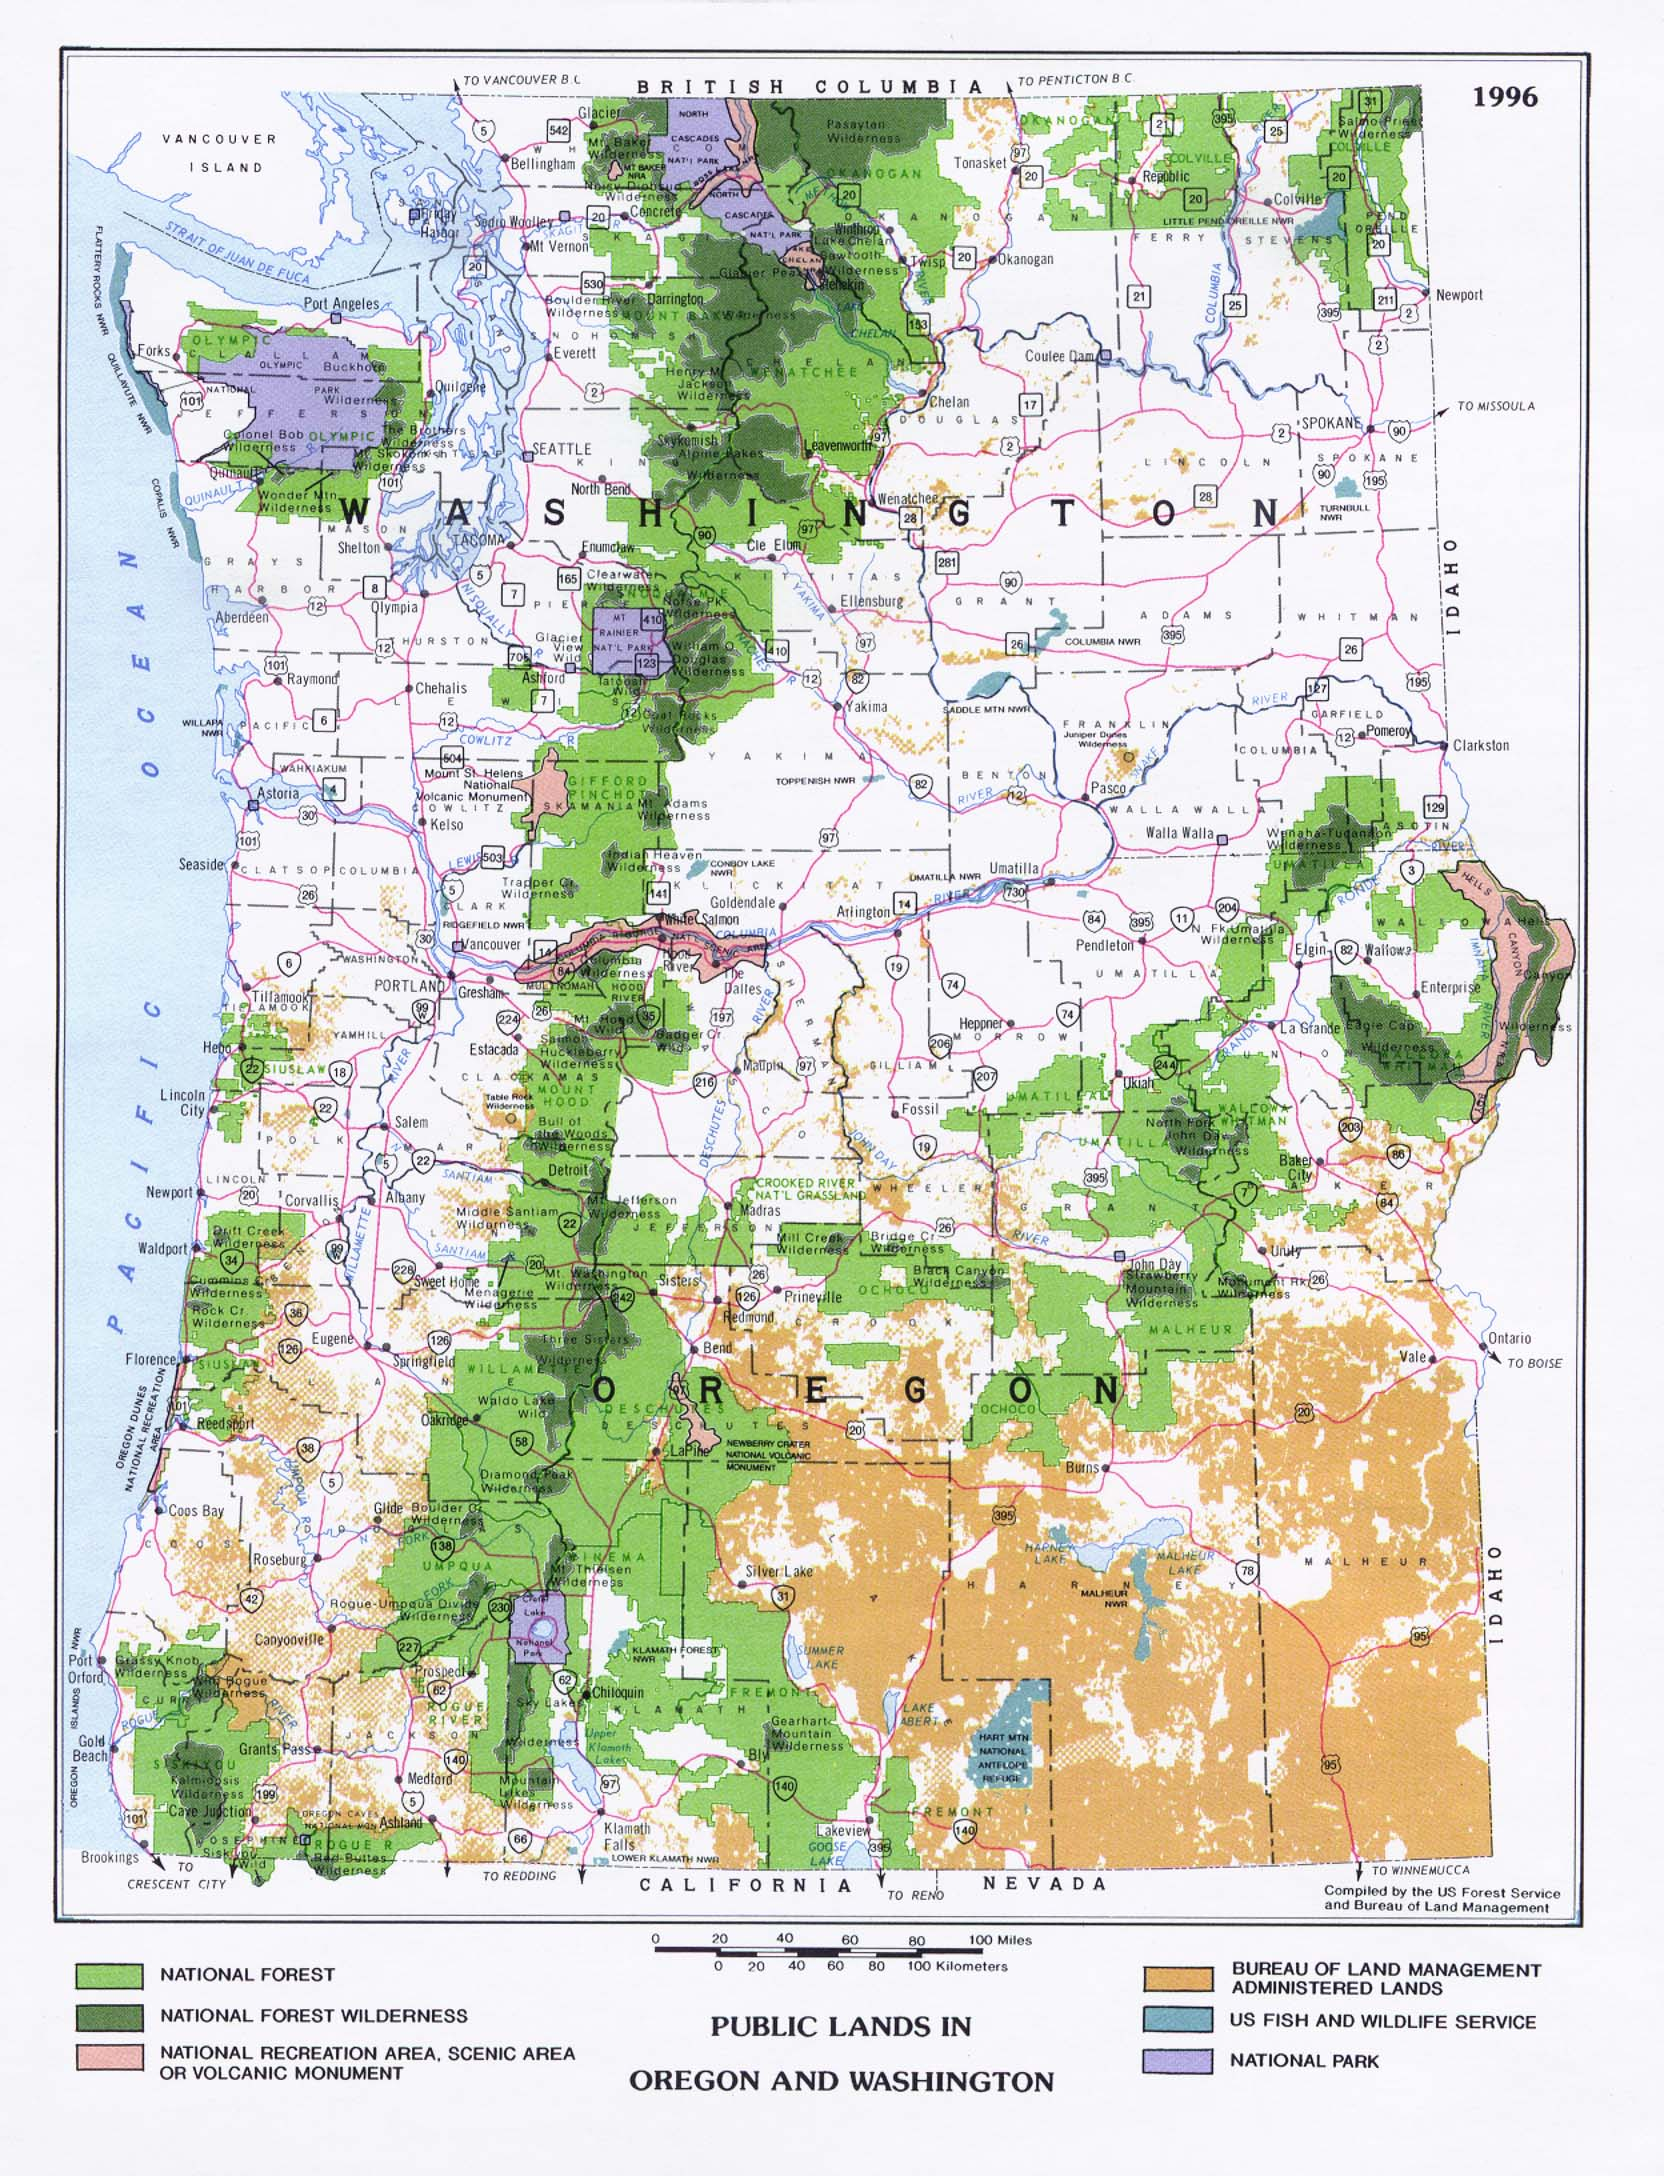 Washington Oregon Maps : washington, oregon, Washington, Perry-Castañeda, Collection, Library, Online